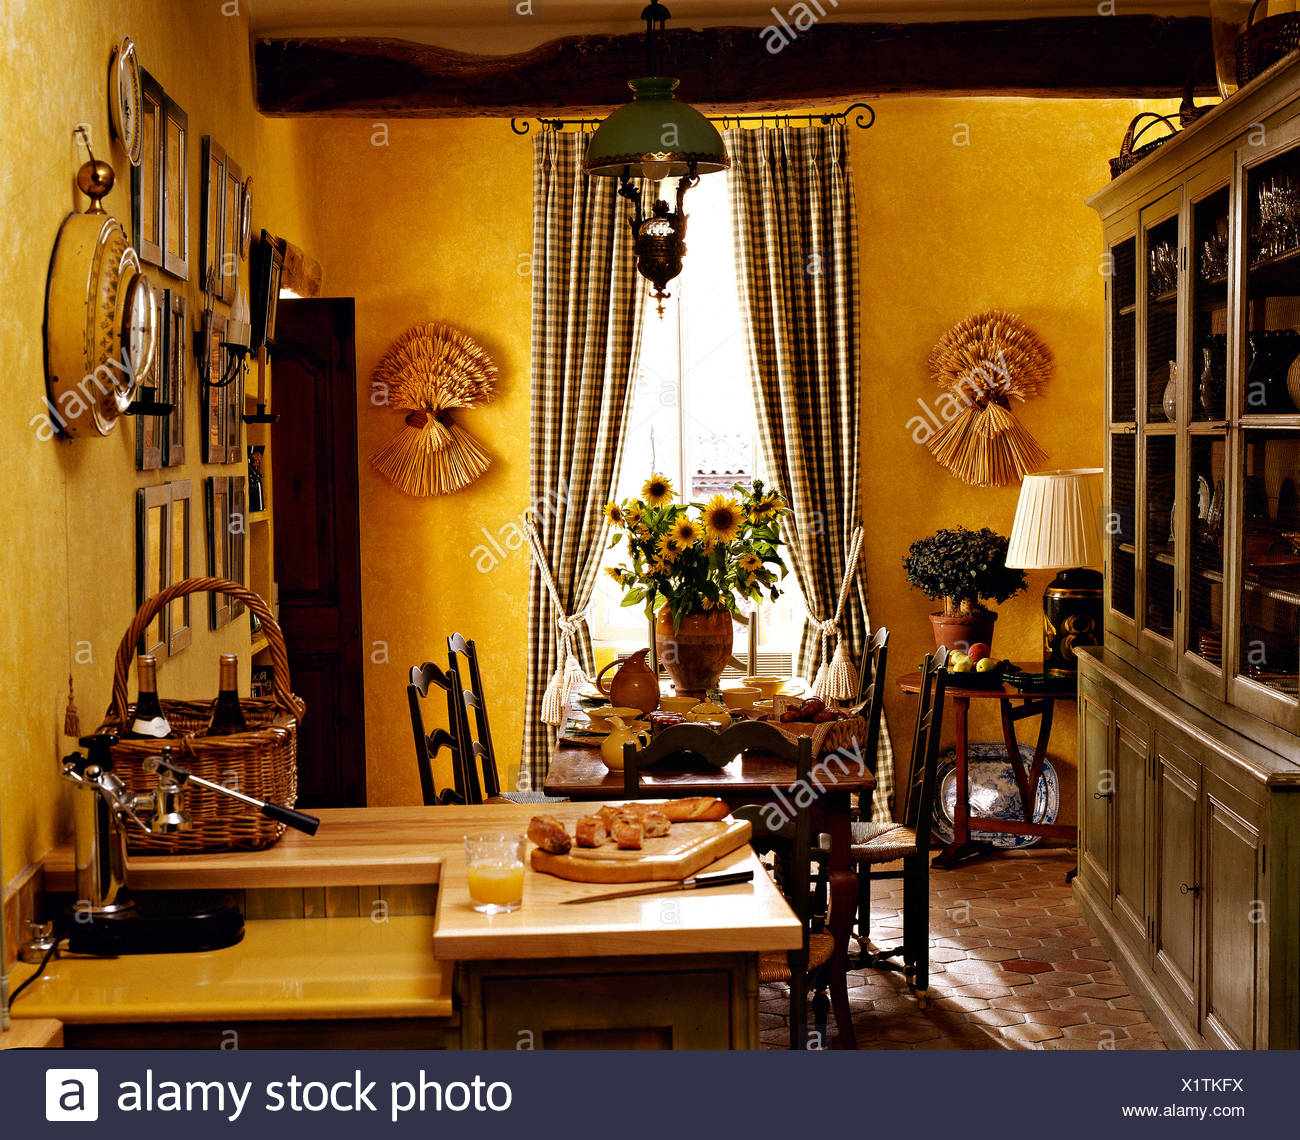 Exceptionnel Large Painted Dresser In Bright Yellow French Country Kitchen Dining Room  With Checked Curtains On The Windows